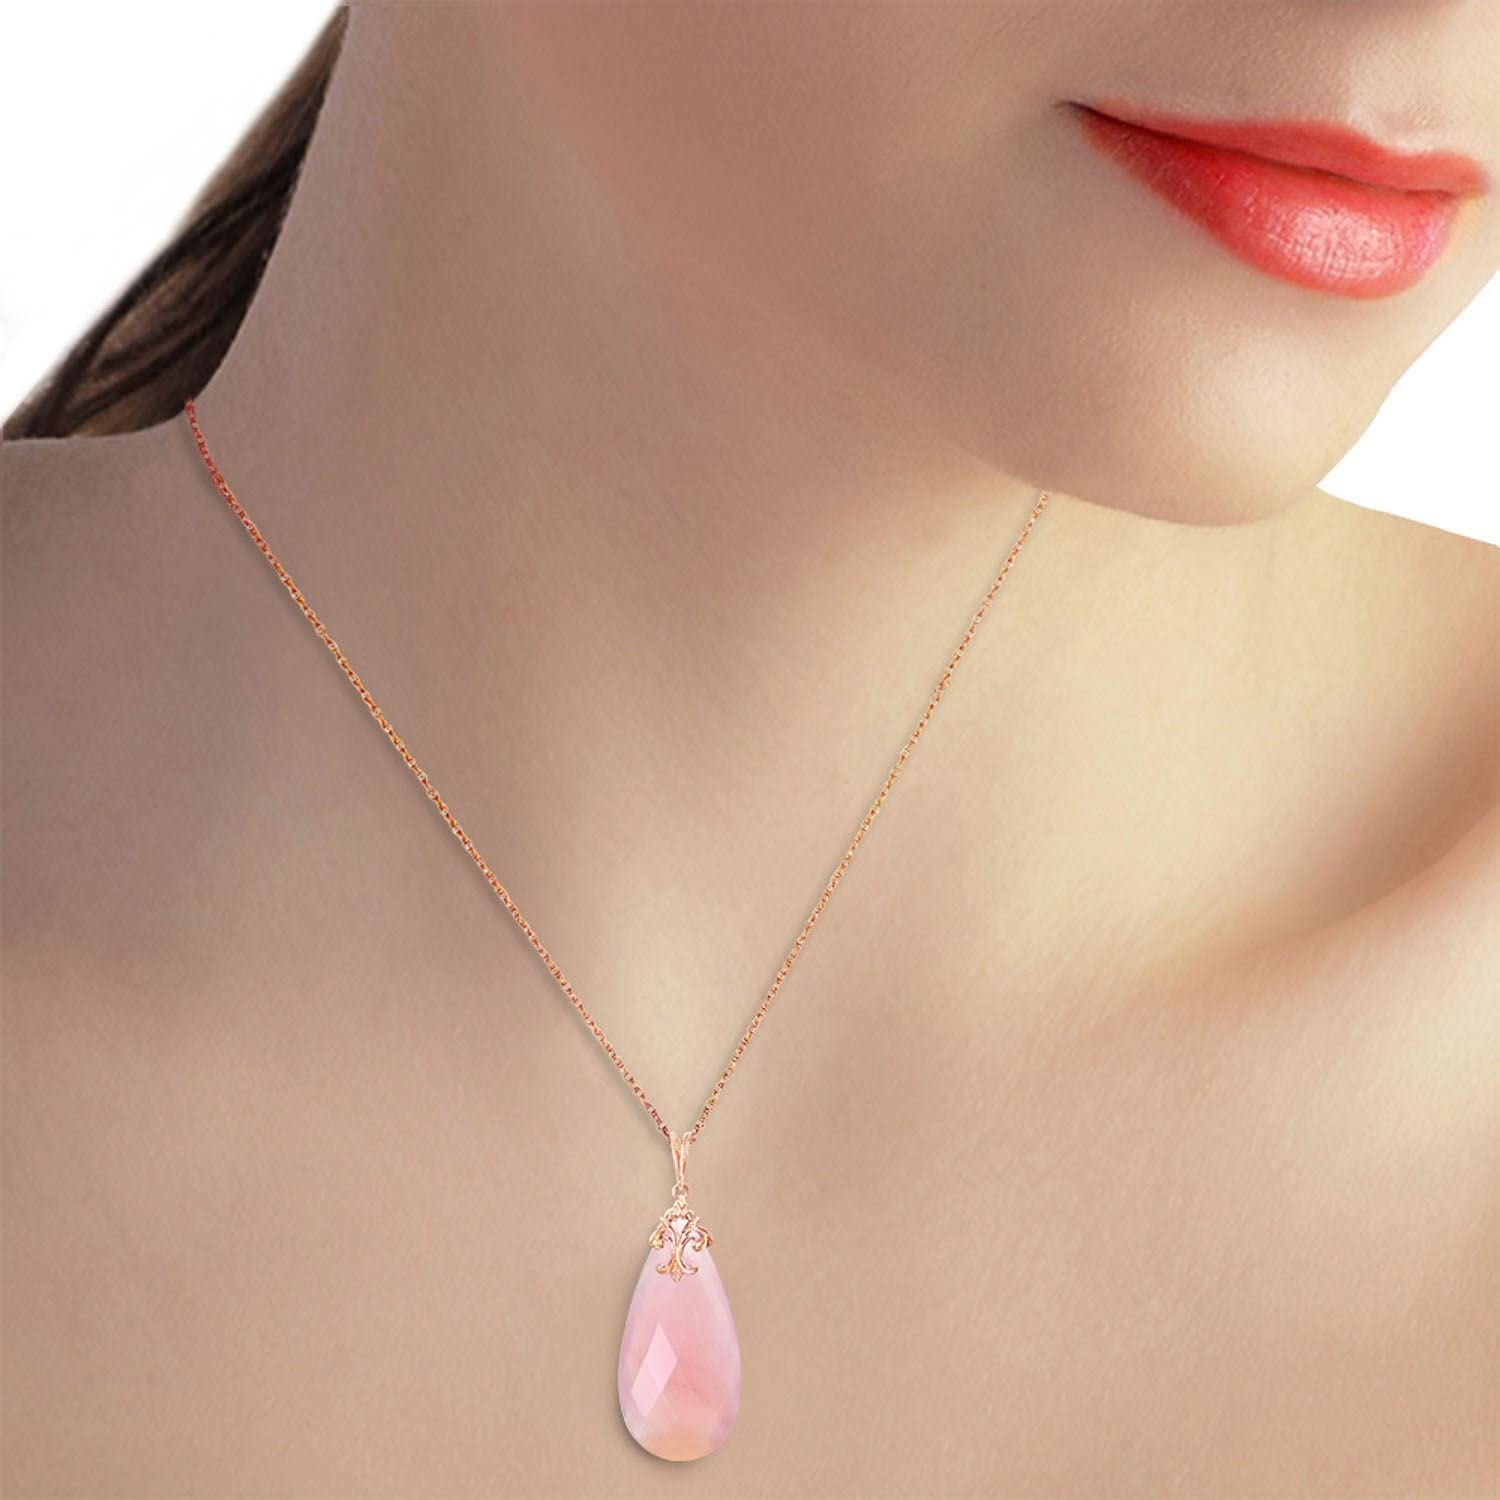 ALARRI 14K Solid Rose Gold Necklace with Briolette 31x16 mm Pink Chalcedony with 24 Inch Chain Length